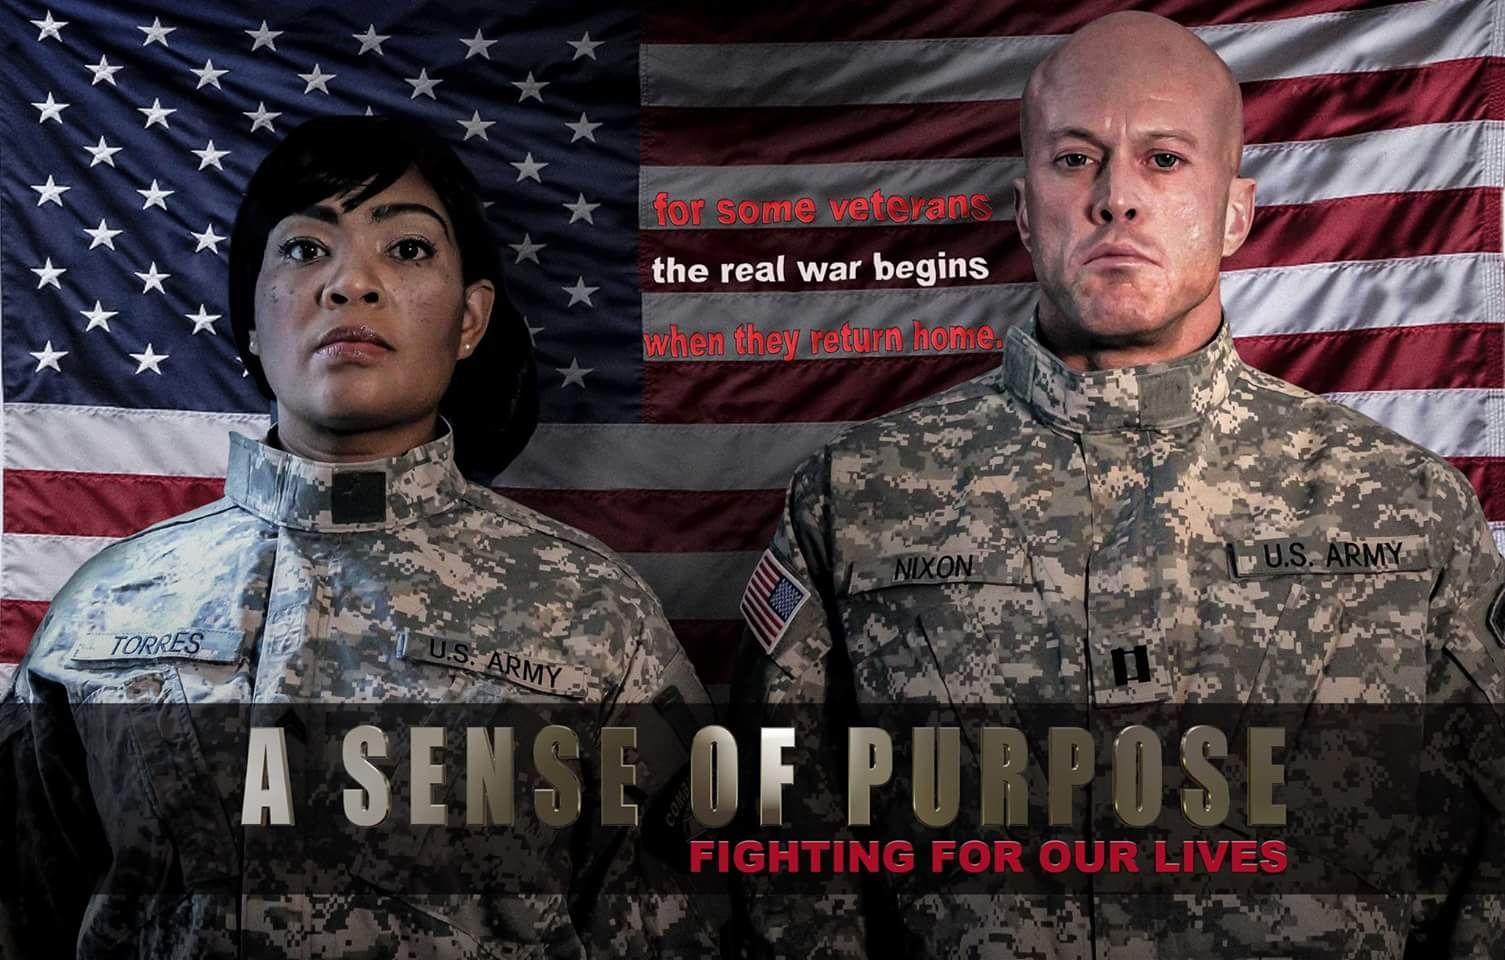 A Sense of Purpose Fighting For Our Lives - Tamara Woods & John Quinlan Poster #JohnQuinlan